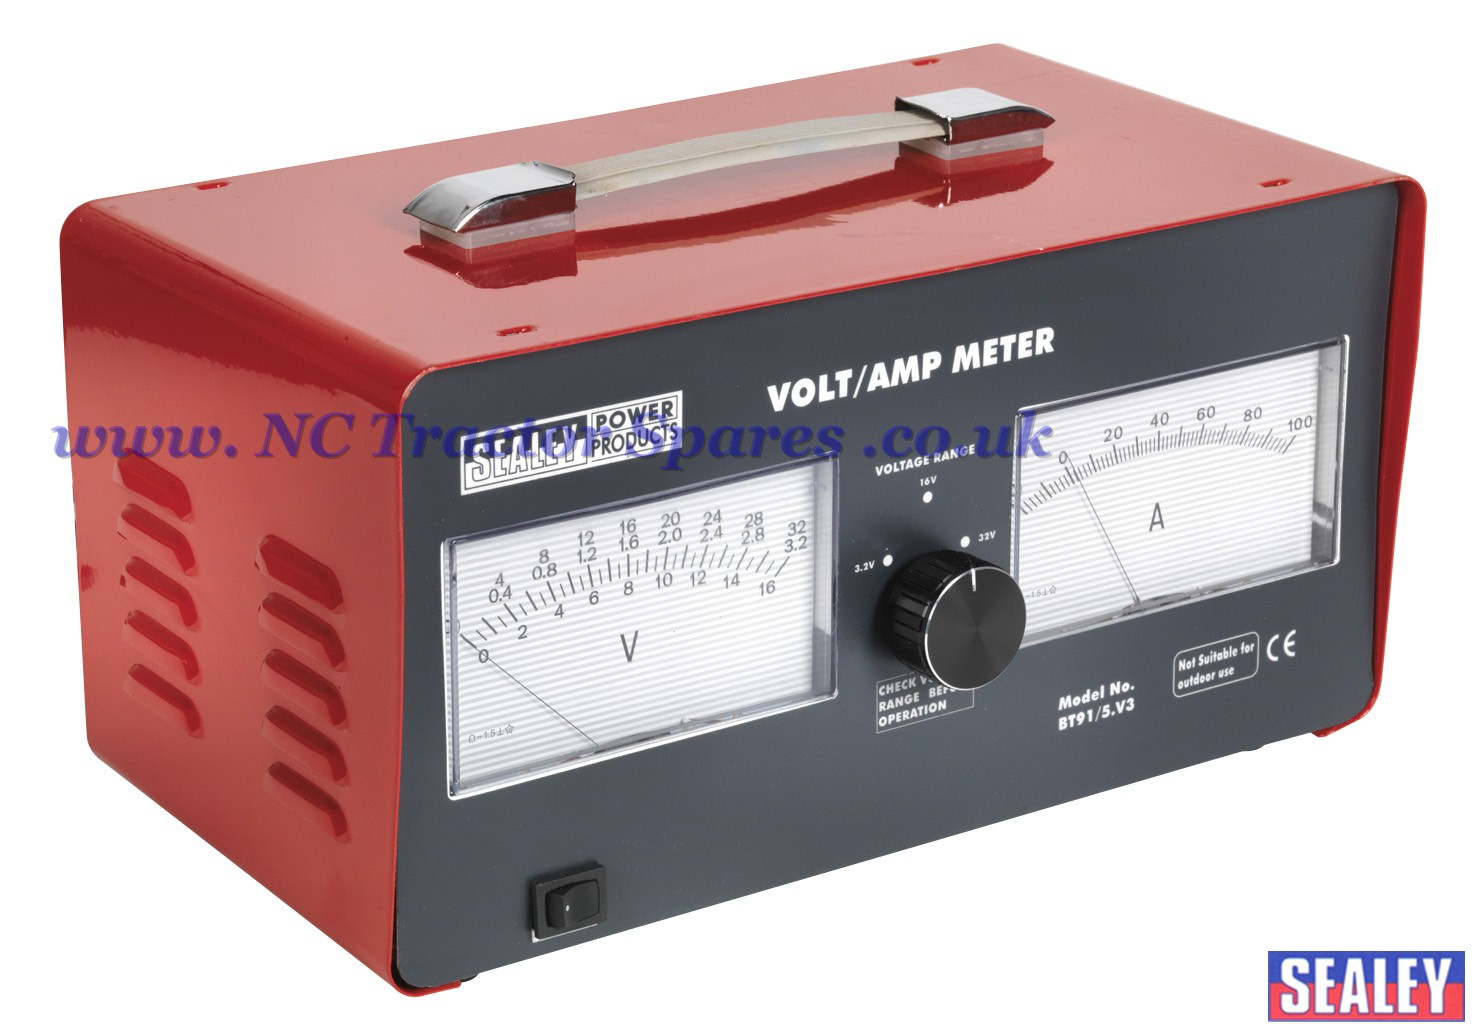 Electric Volt Meter Carry Case Not Lossing Wiring Diagram Meters Amp Ampere With Pic Voltmeter Ammeter 6 24v Symbol Electrical